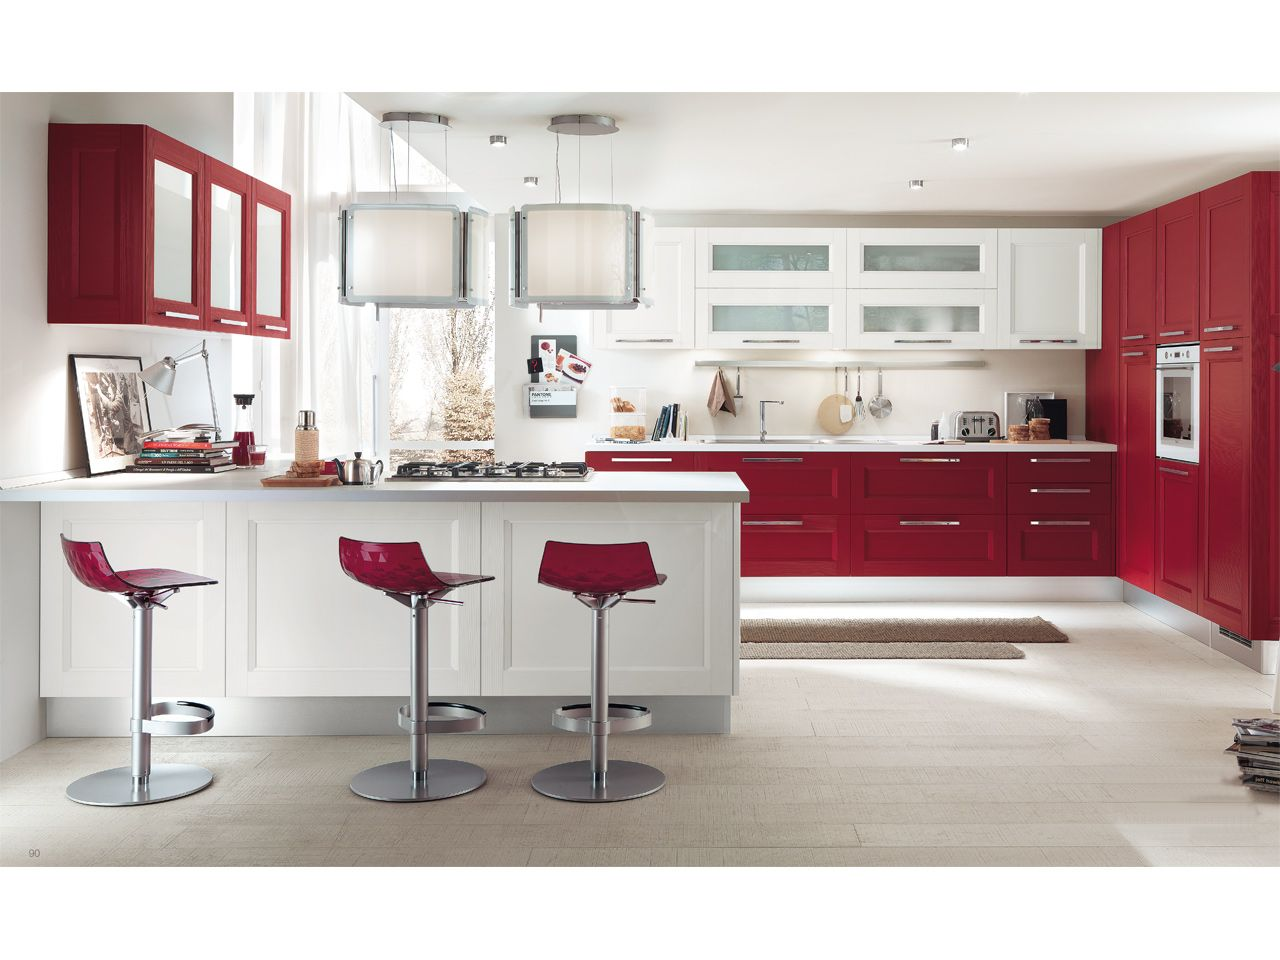 designed for everyday sue georgia is a strong reliable kitchen volumes and